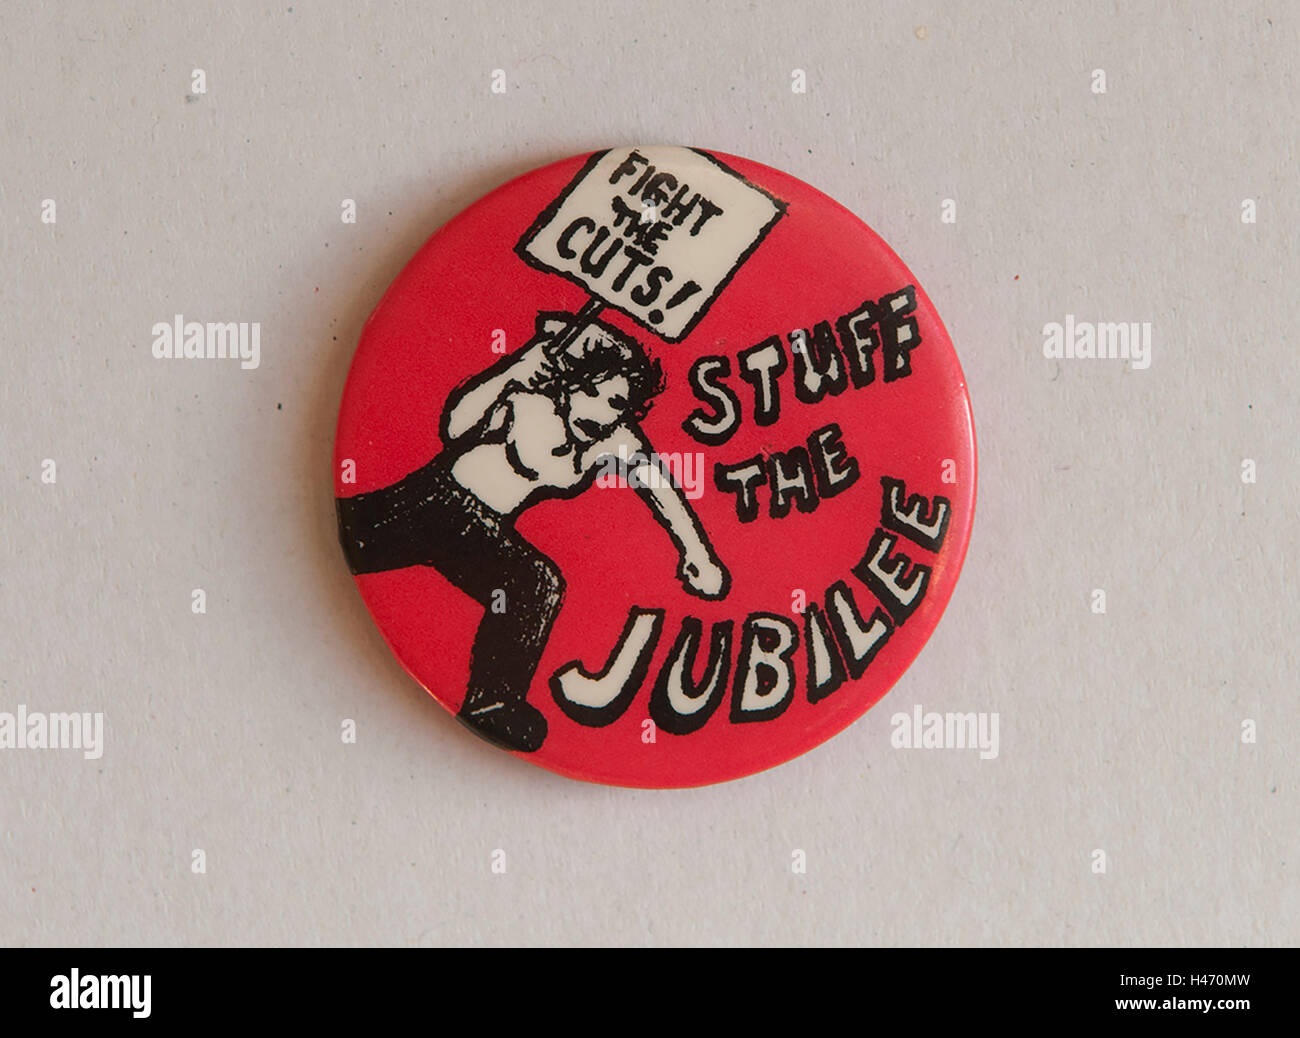 Stuff the Jubilee Fight the Cuts Socialist Works party SWP protest at cost of the Jubilee. 1977. HOMER SYKES - Stock Image